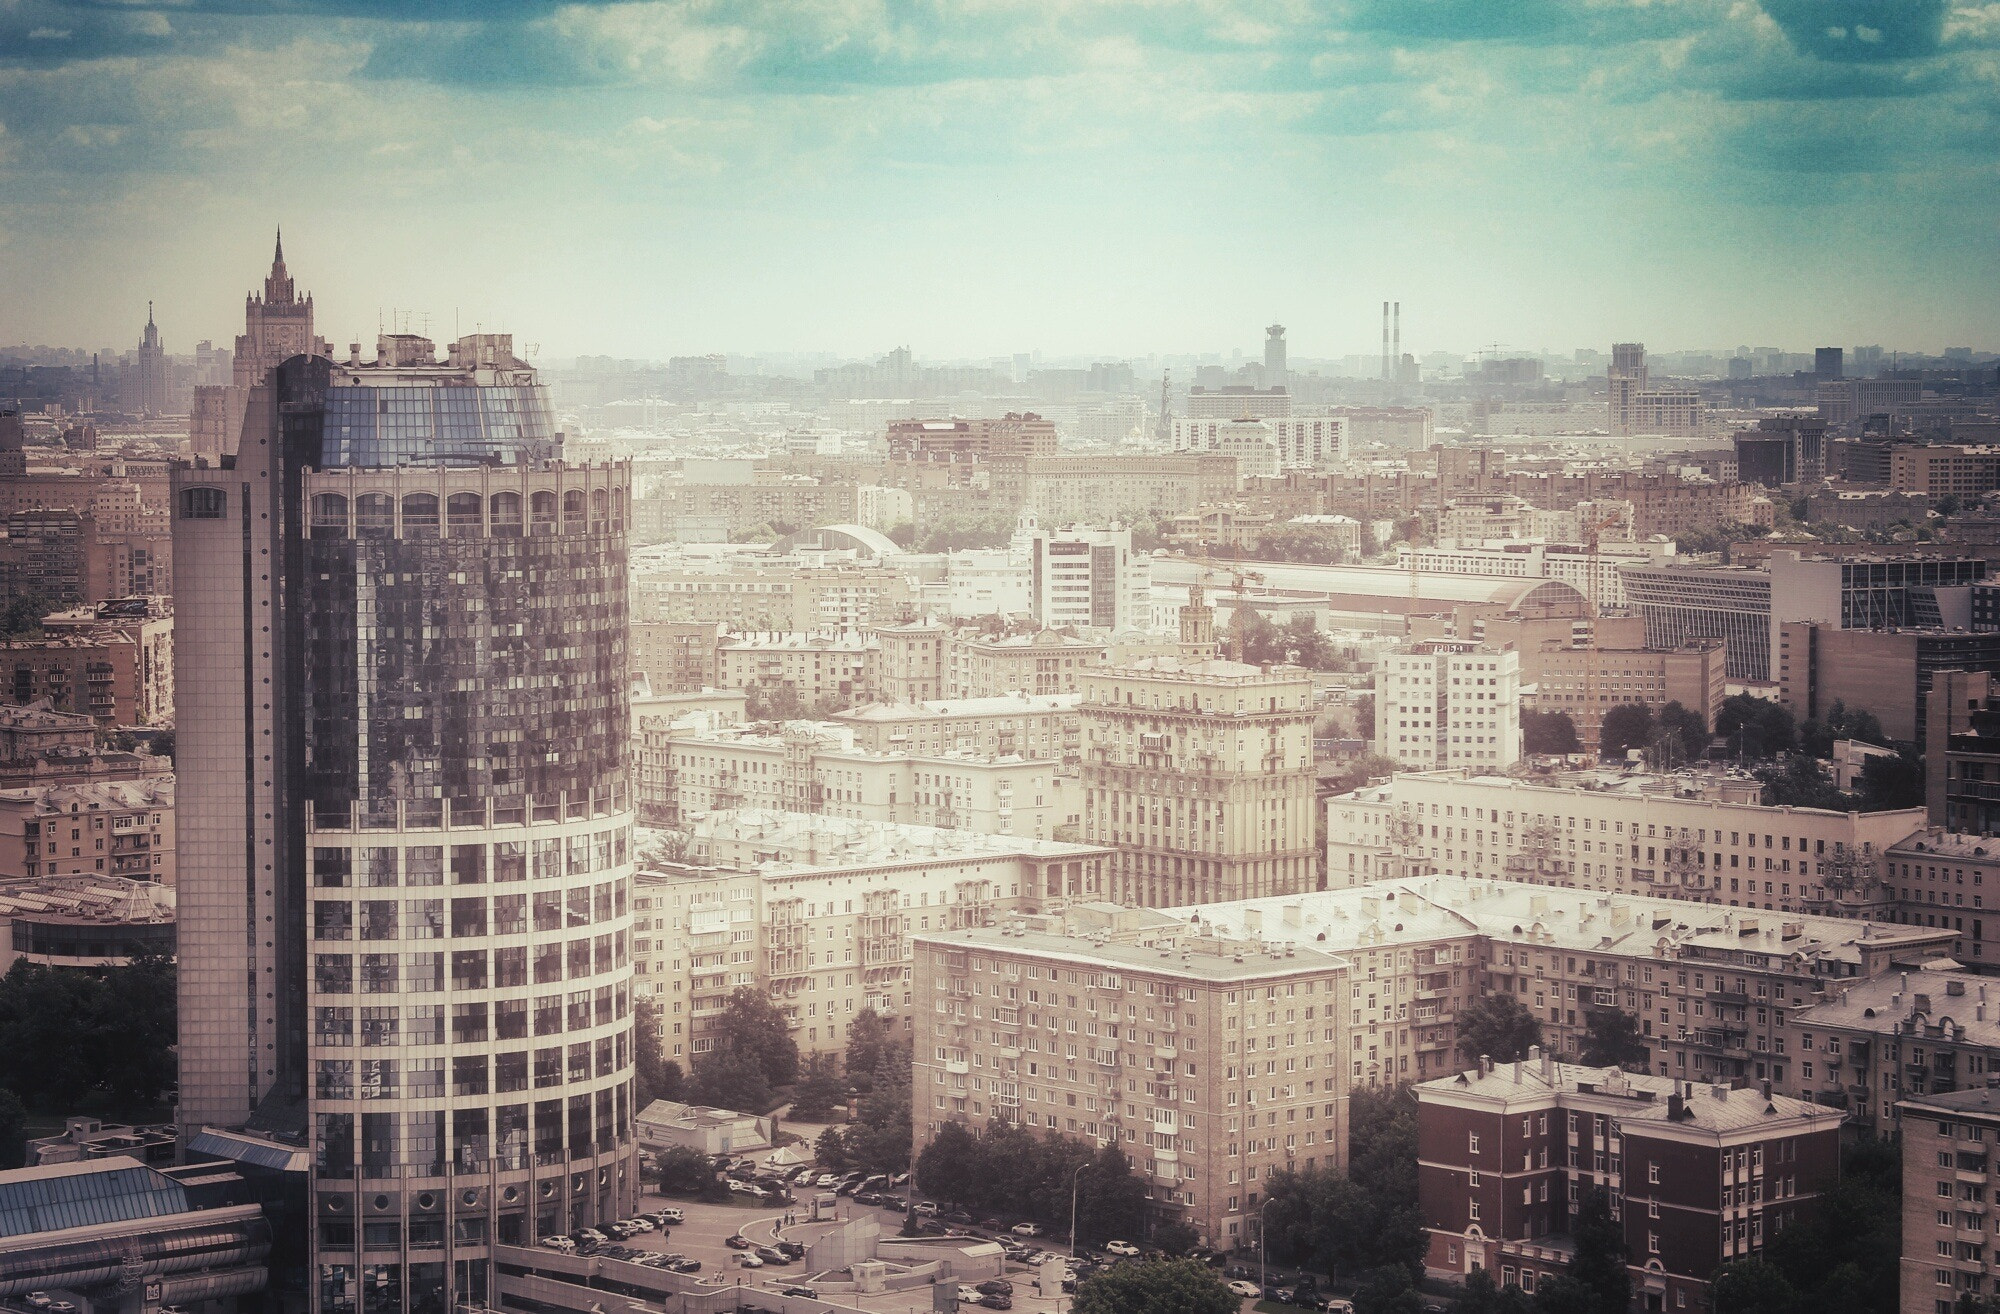 Photograph Moscow by Marina Endzhirgli on 500px